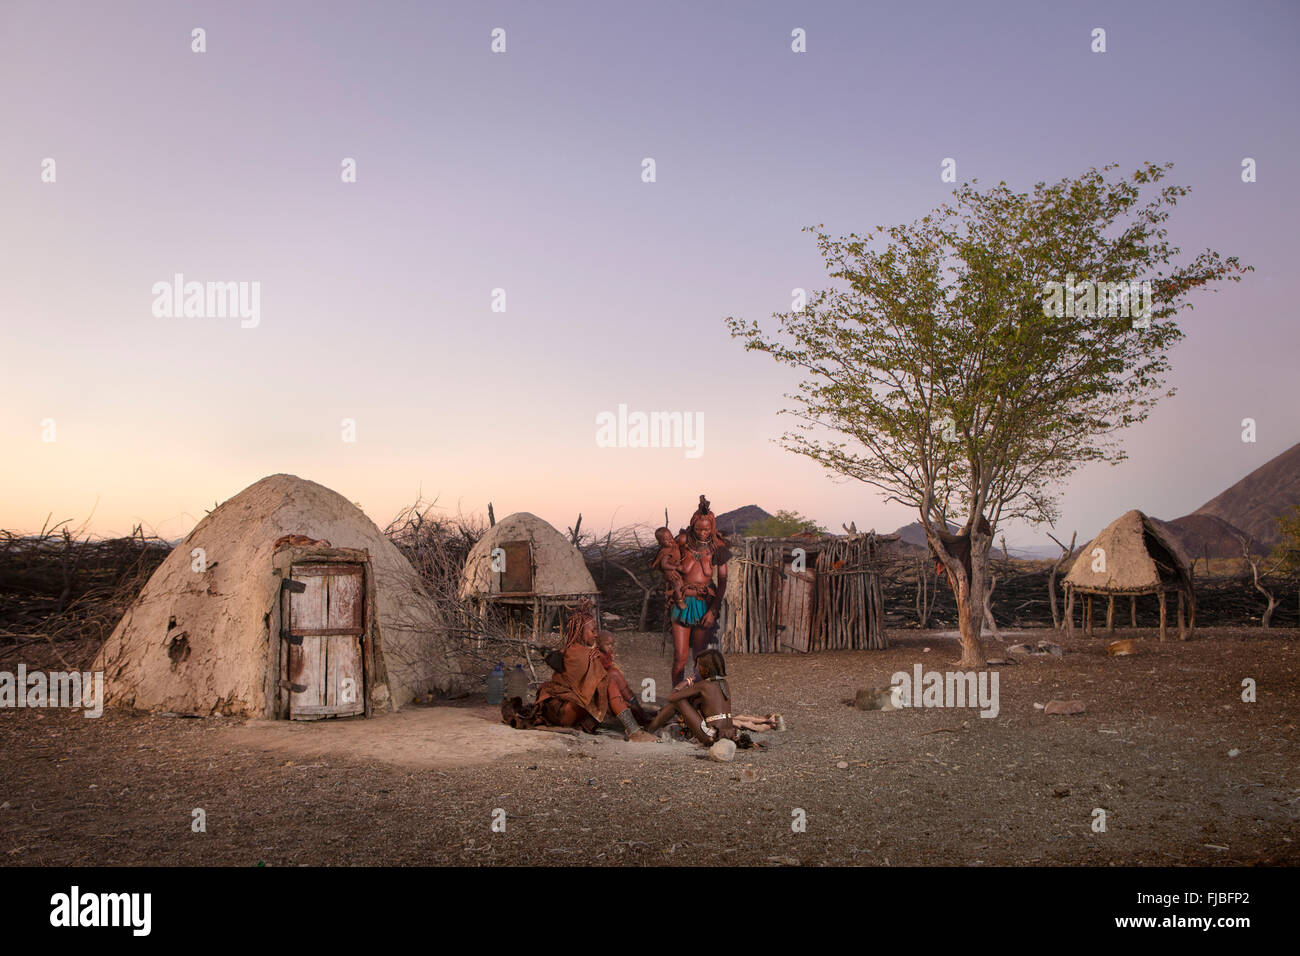 Himba women in Namibia - Stock Image